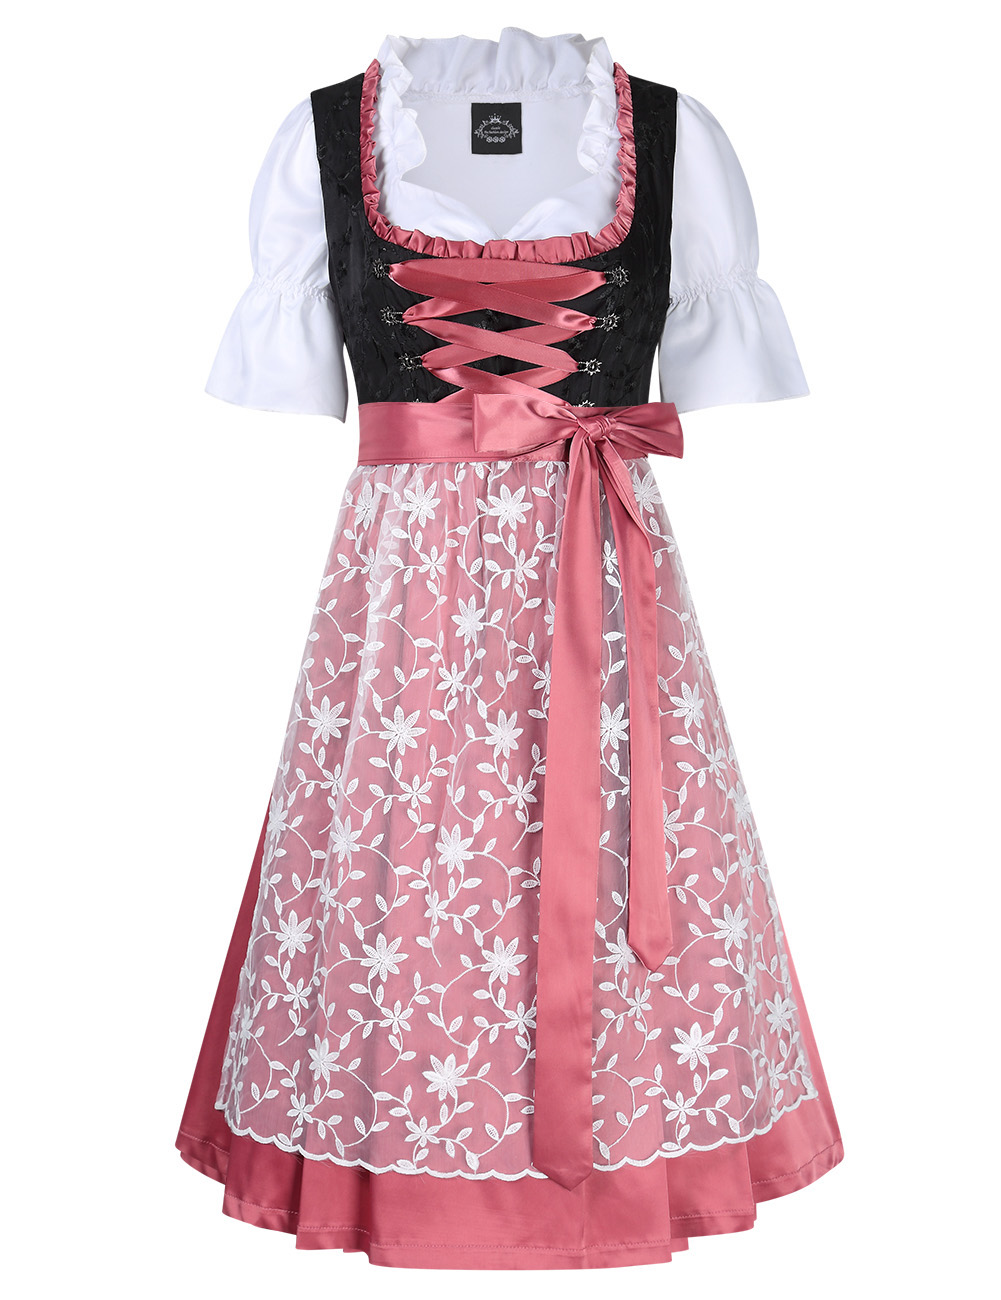 3PCS Women's Ruffle Floral Lace Beer Dress Traditional Dirndl Set for Oktoberfest Theme Party Cosplay